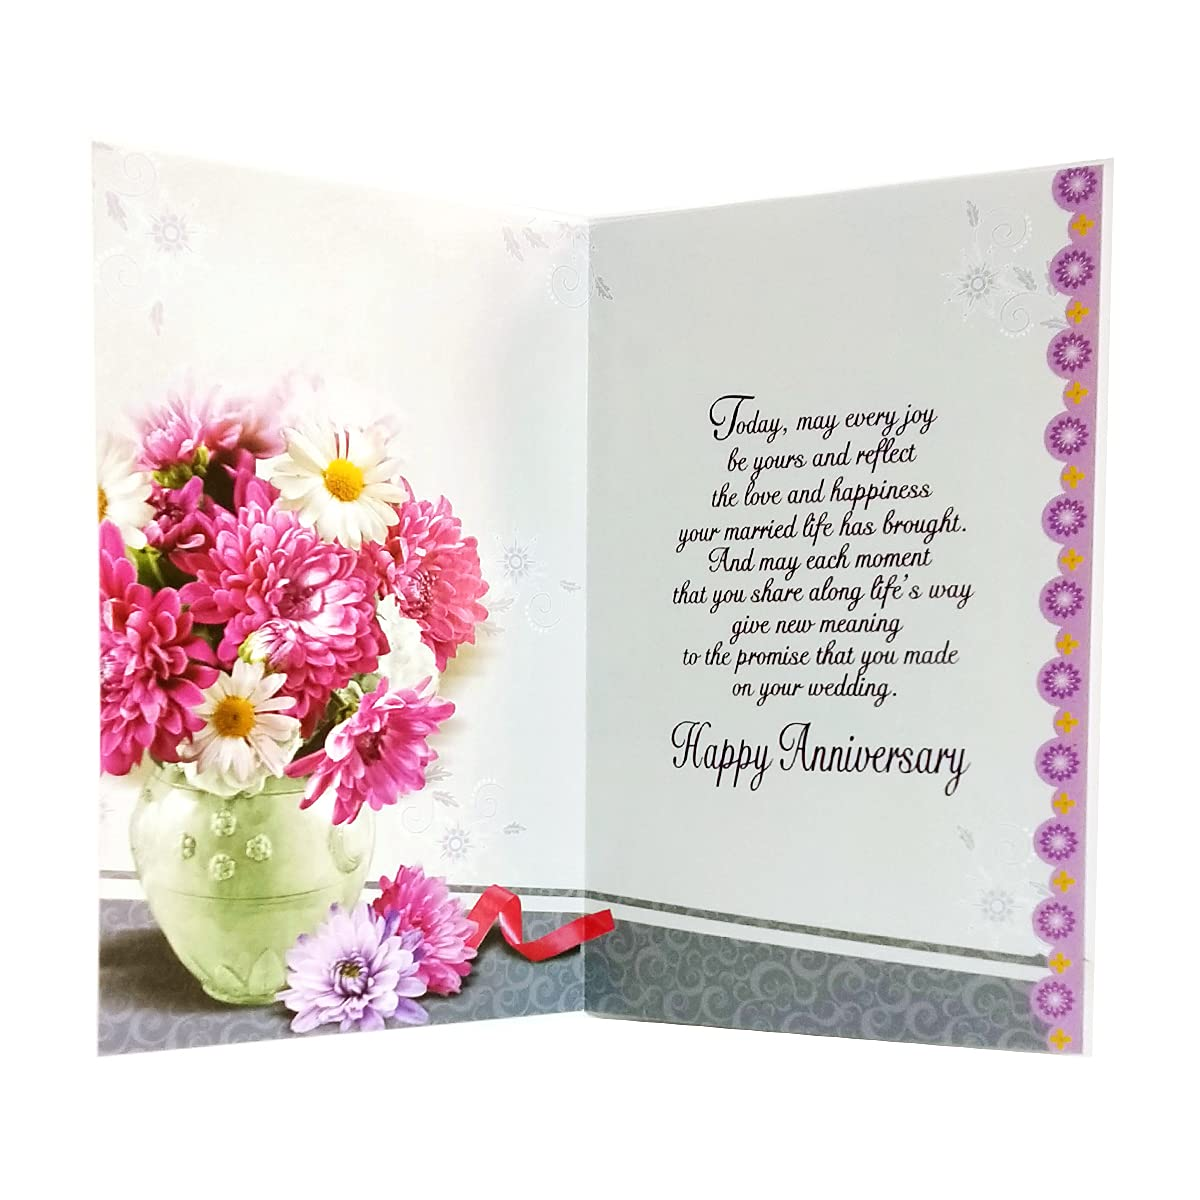 Happy anniversary book and flowers